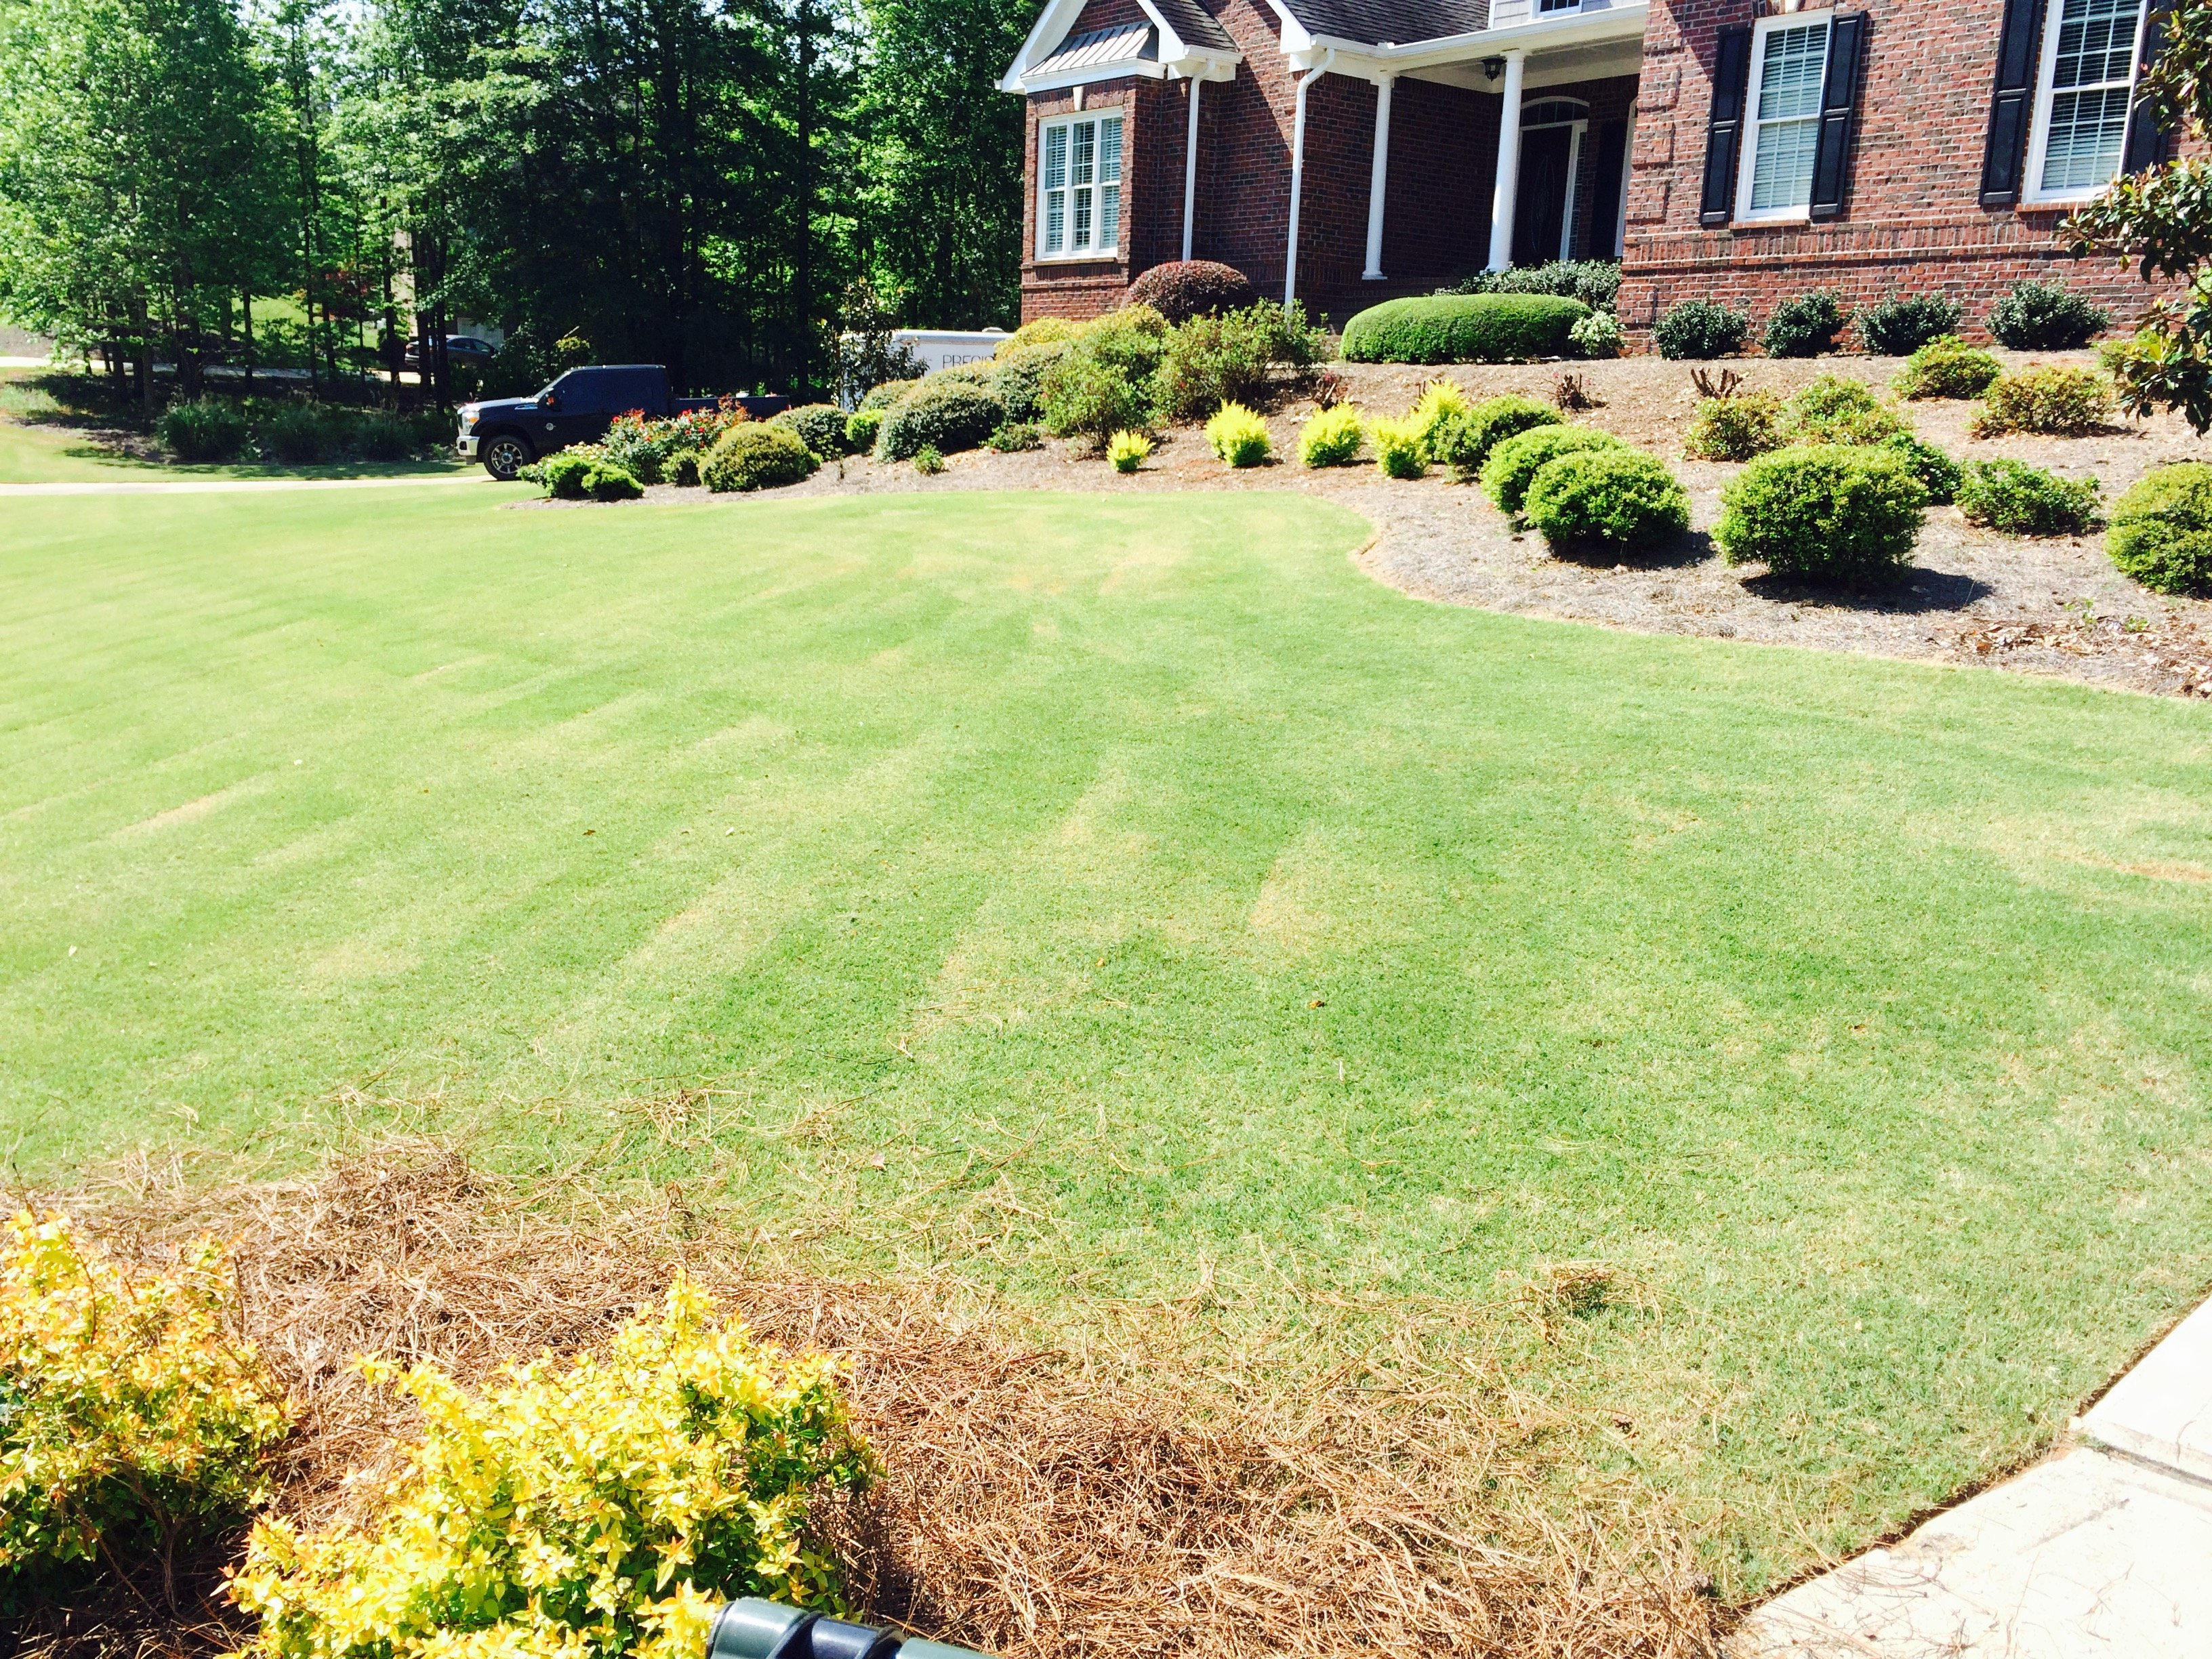 Custom Designed Landscaping With Garden Beds, Shrubs, And Manicured Lawn